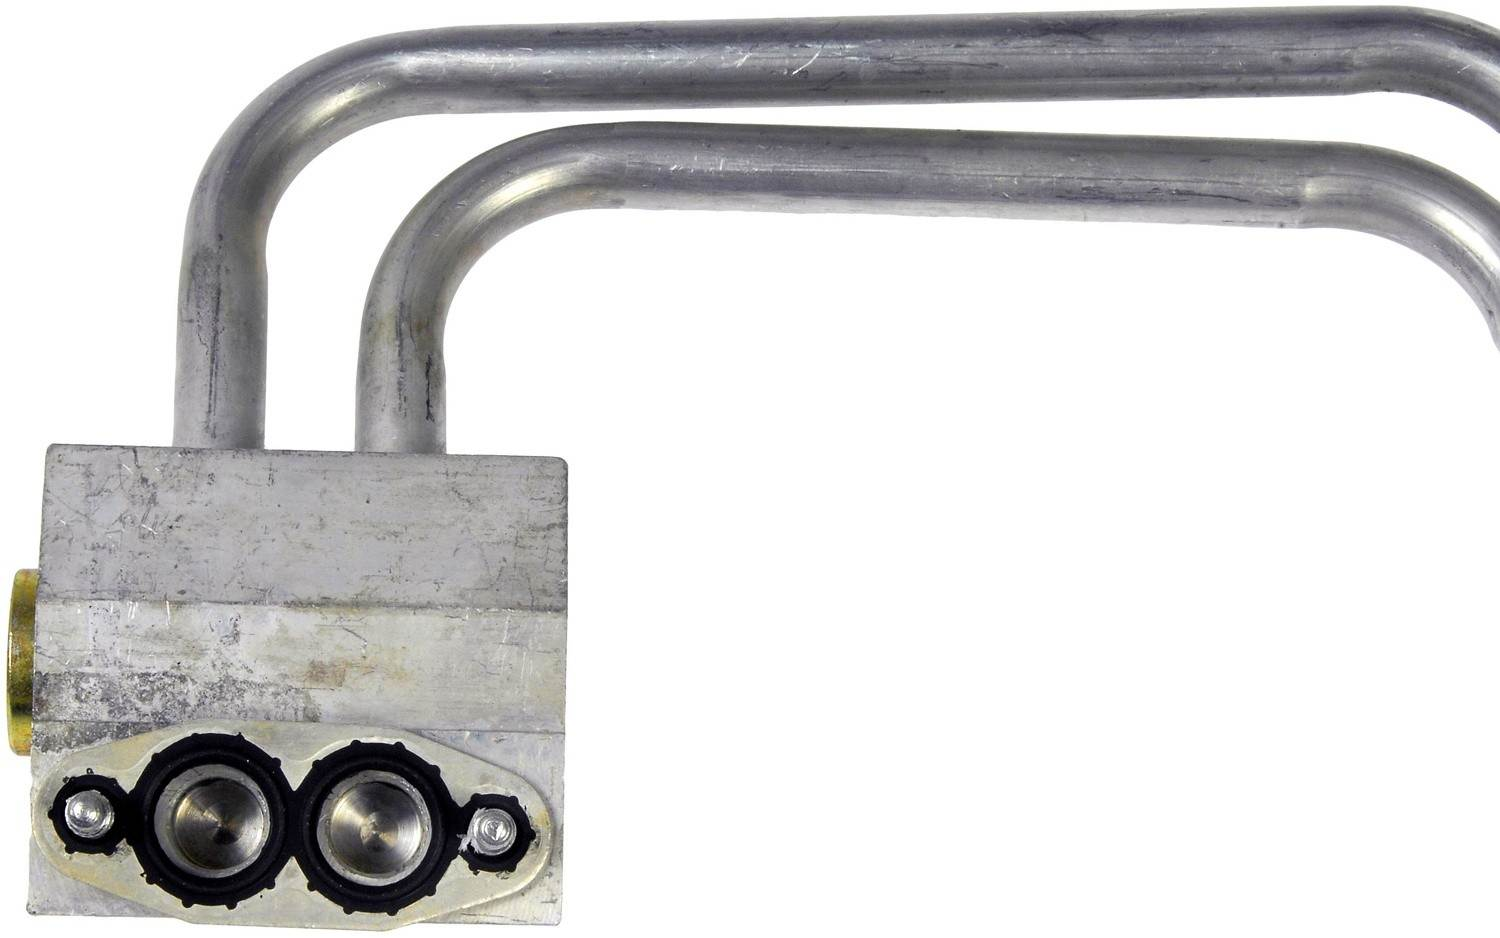 DORMAN OE SOLUTIONS - Engine Oil Cooler Hose Assembly (Inlet and Outlet Assembly) - DRE 625-209